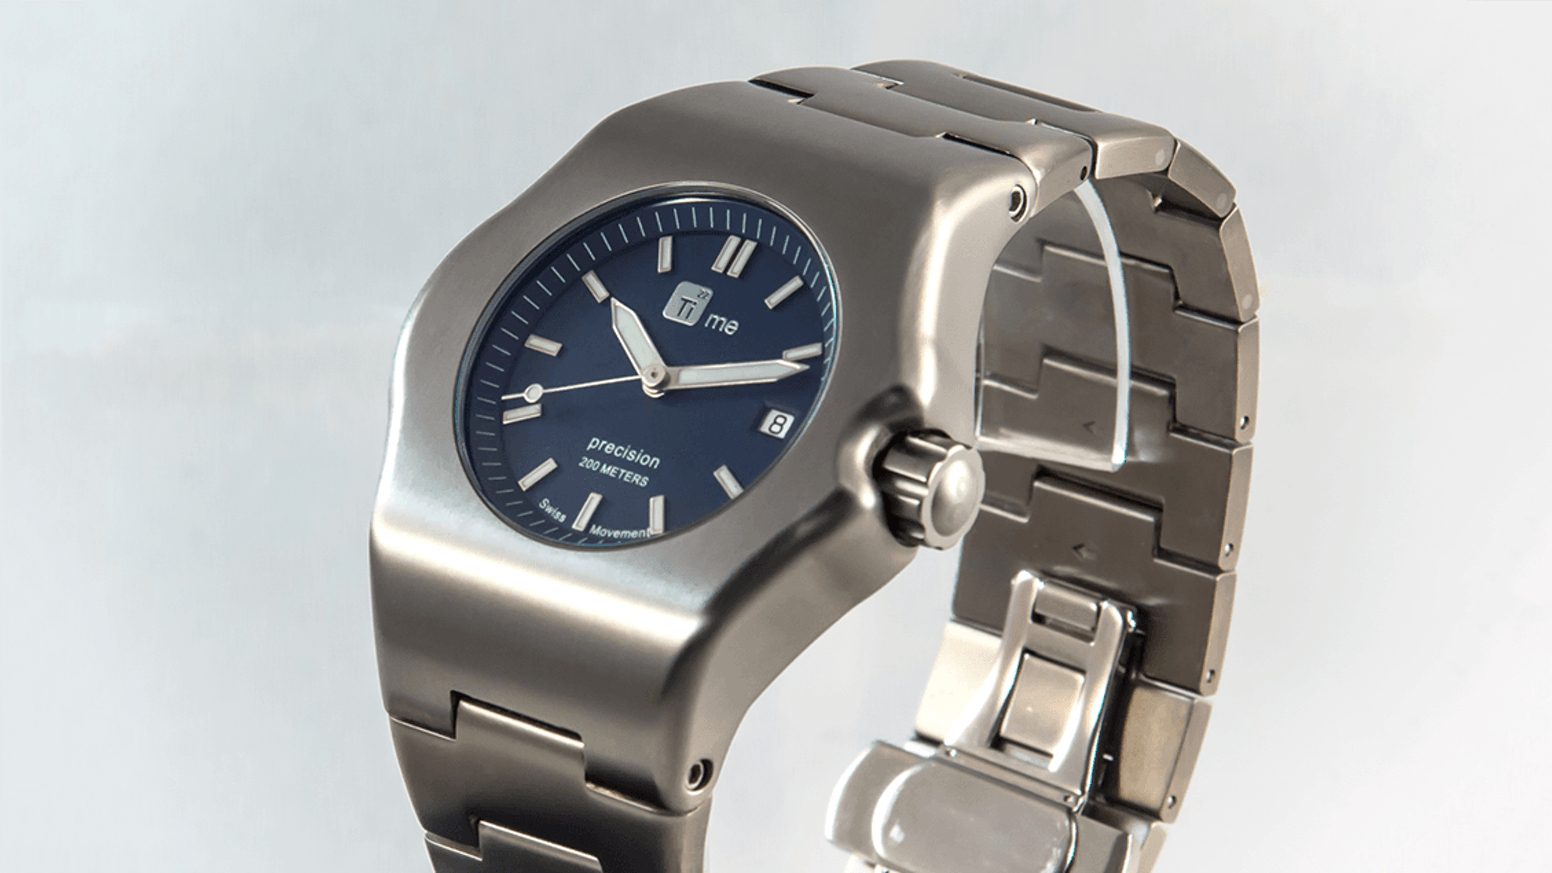 TiMe22 Robusto are innovative Ti5 Titanium Watches with retro futuristic 1970's design.